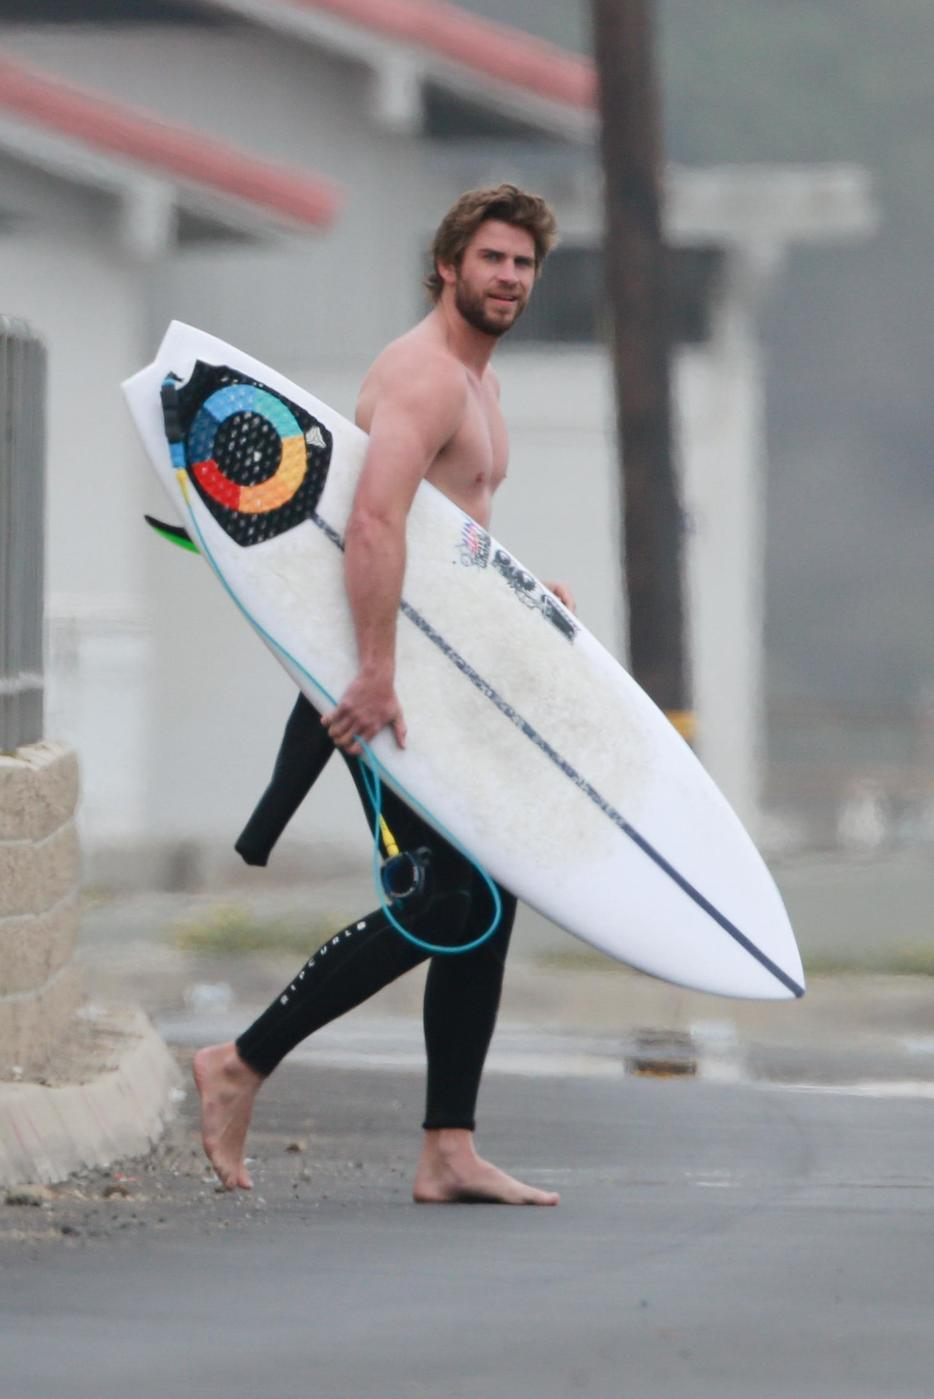 Terms Of Use >> 6 Insanely Hot Pics Of Liam Hemsworth Surfing In Malibu ...